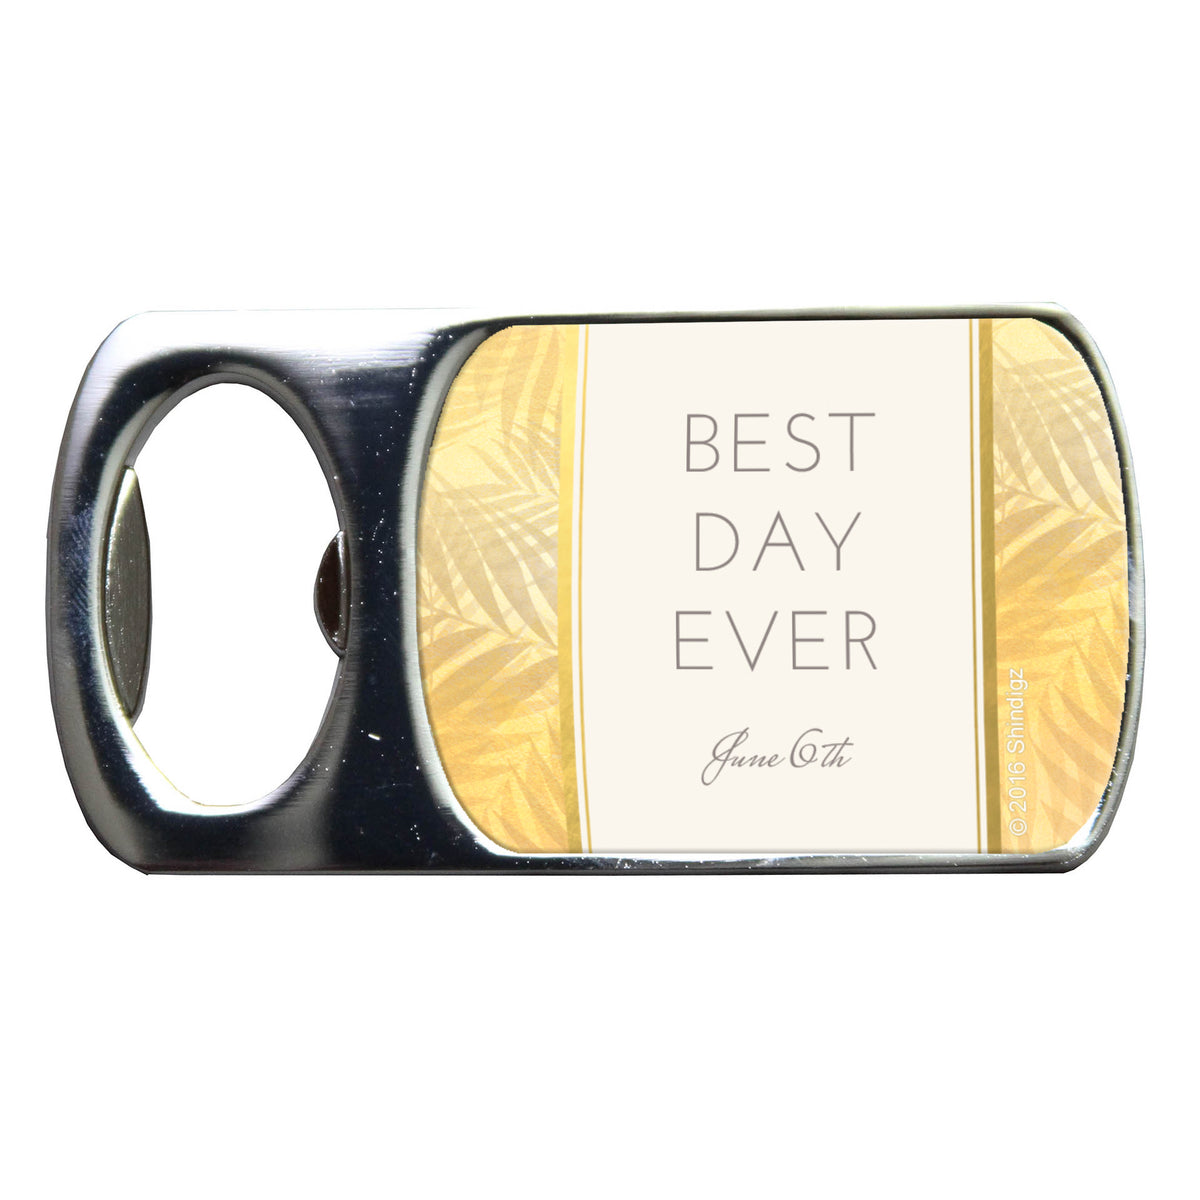 Tropical Elegance Personalized Bottle Opener